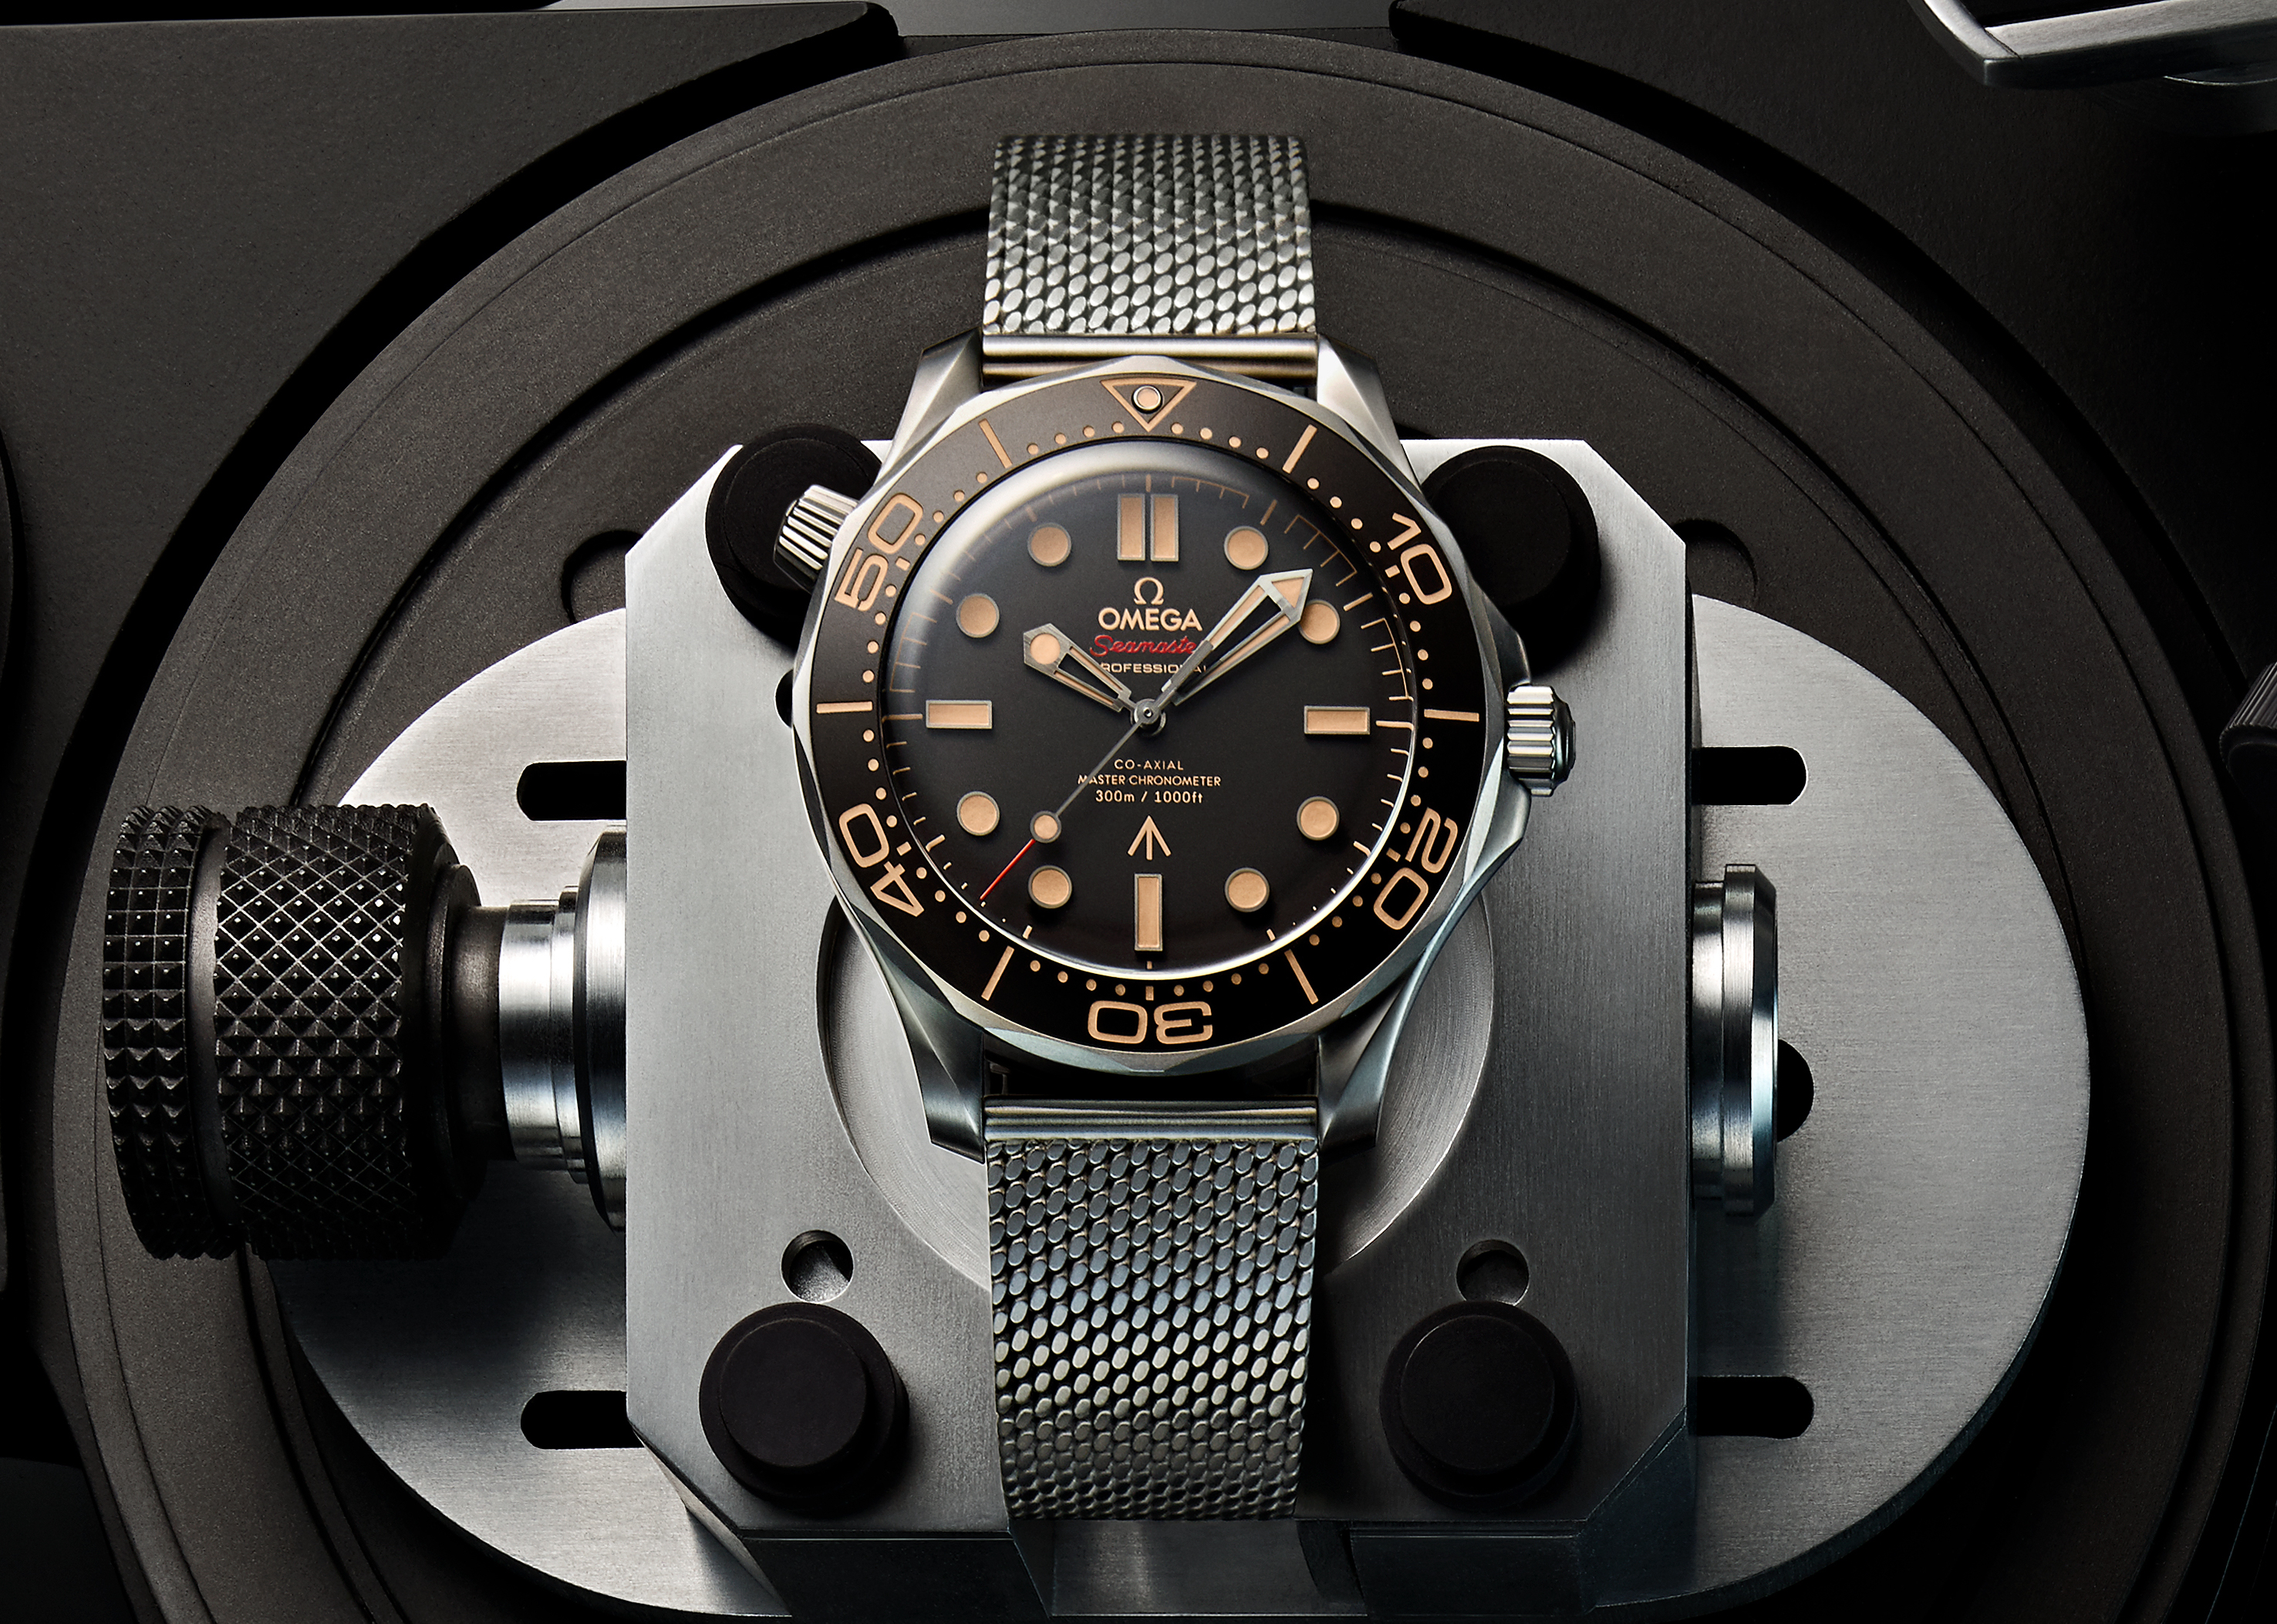 Omega seamaster price list